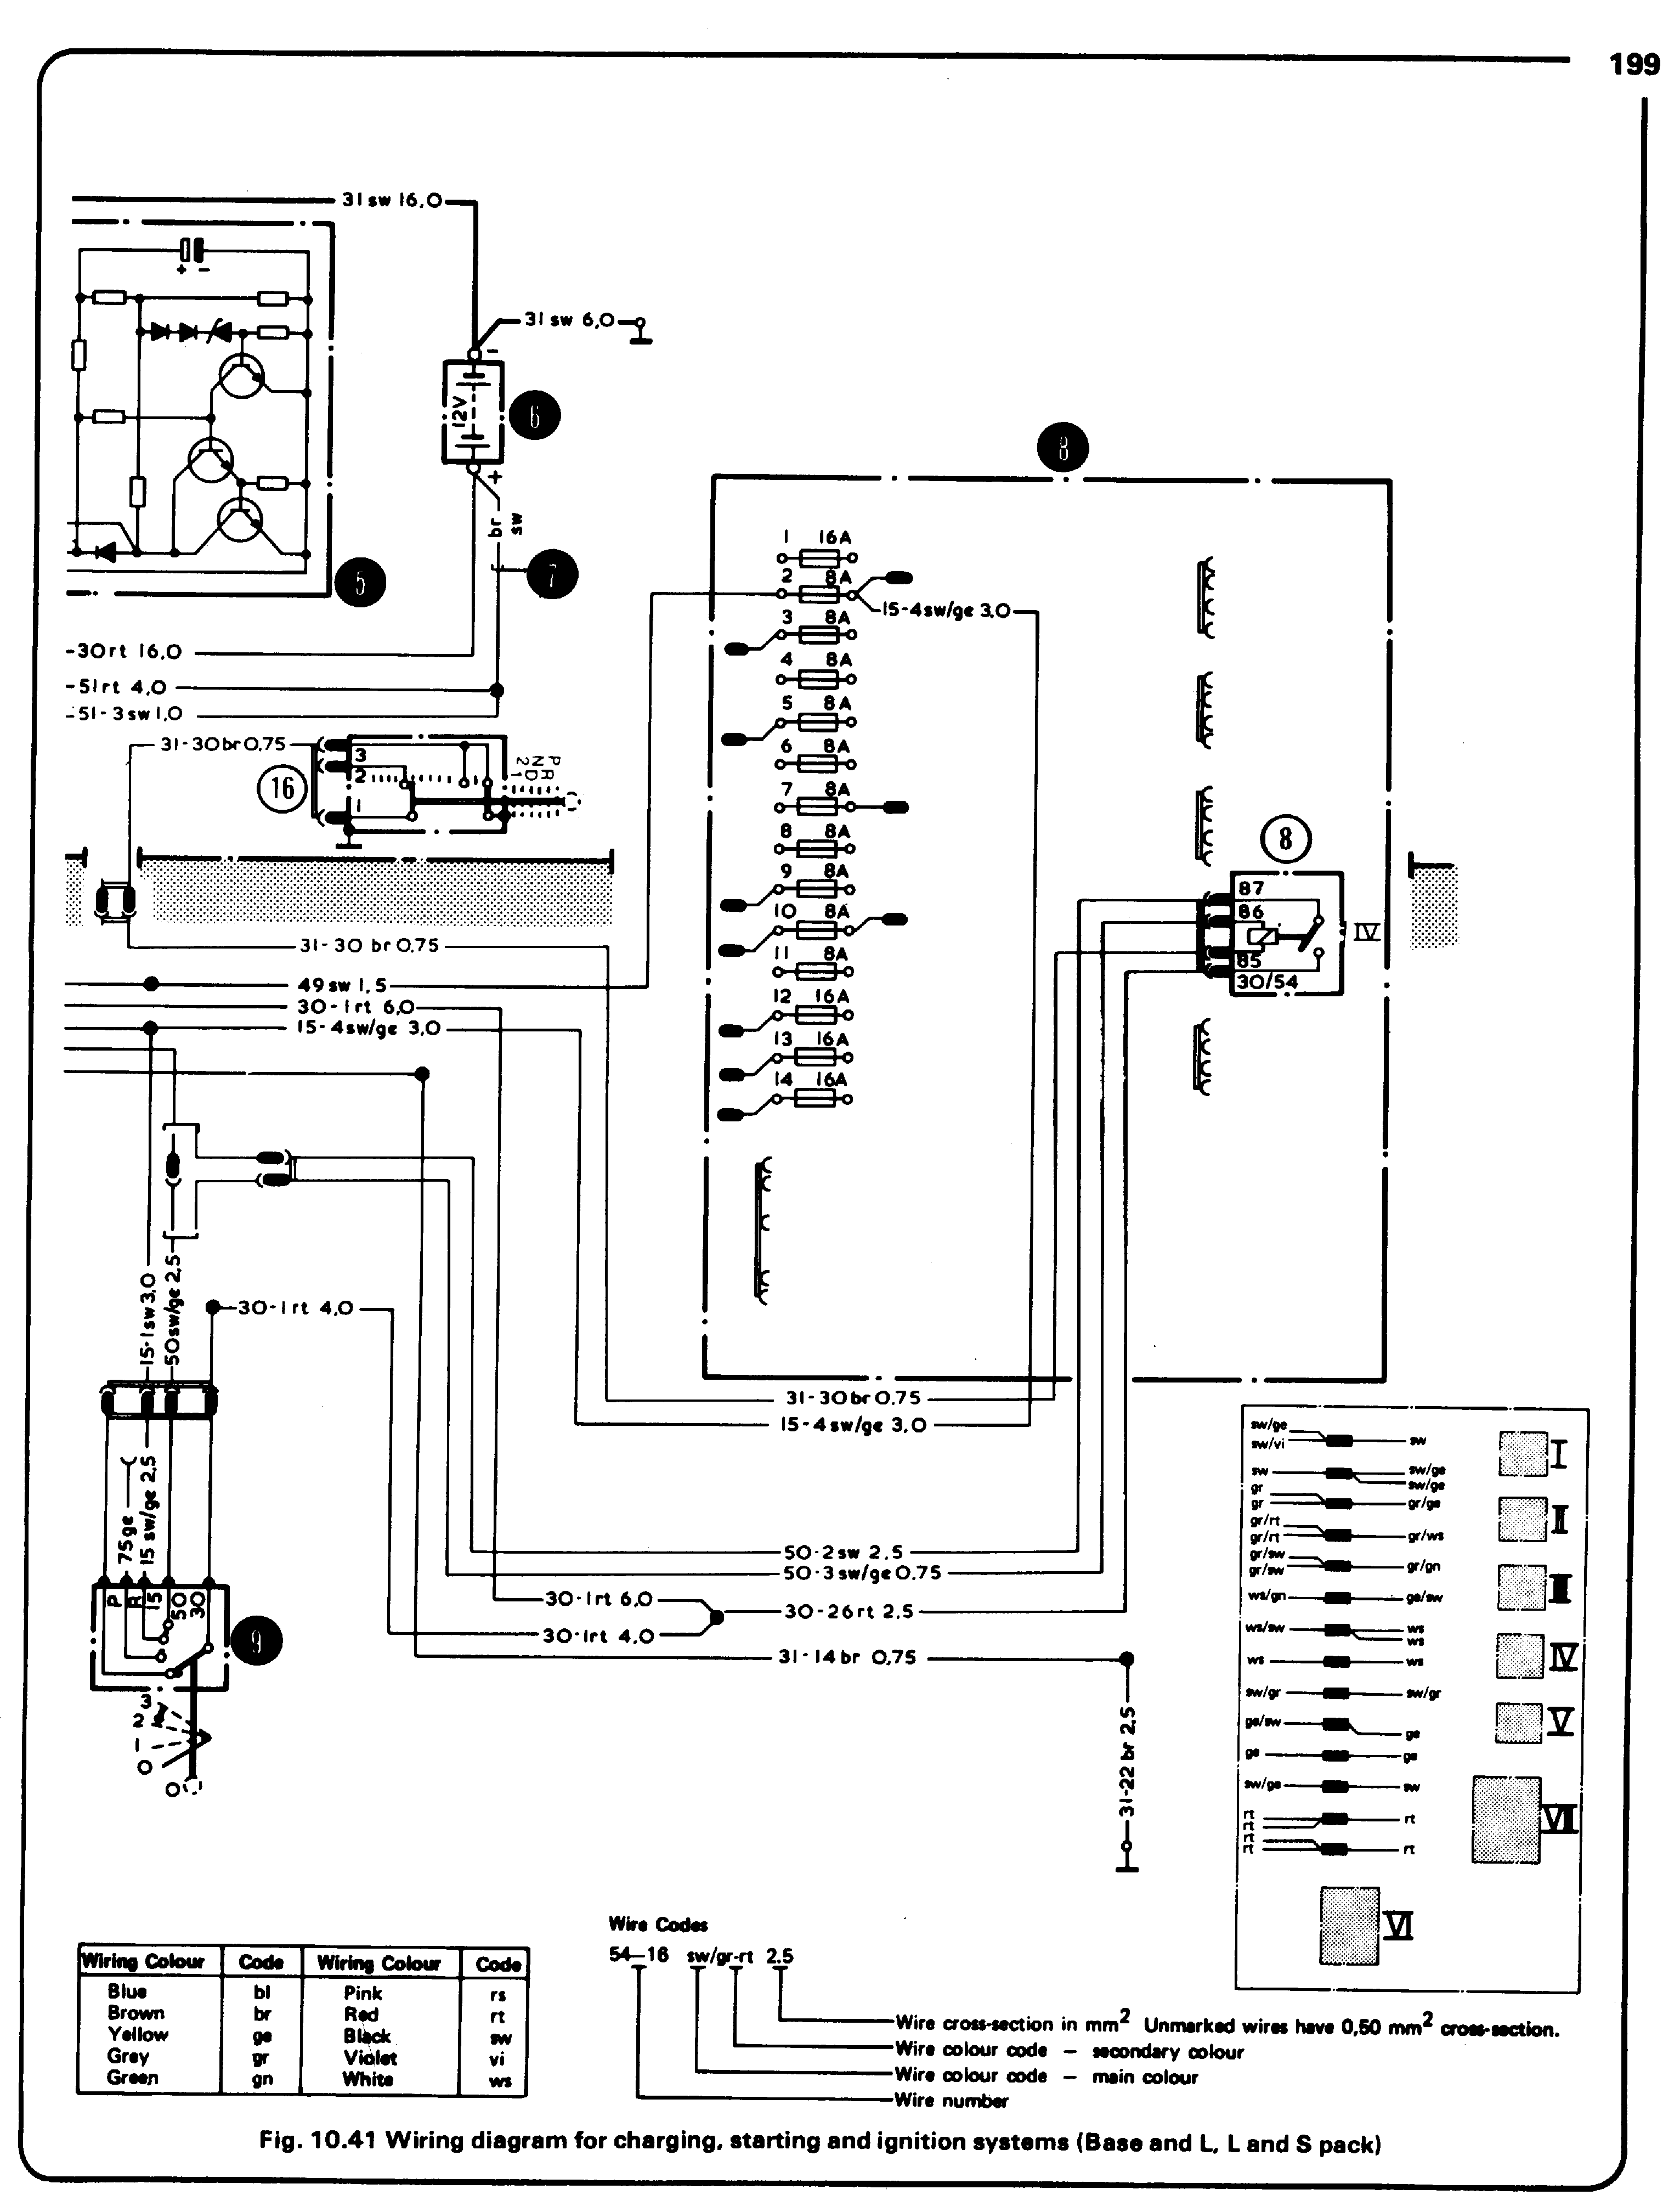 89 e150 wiring diagram